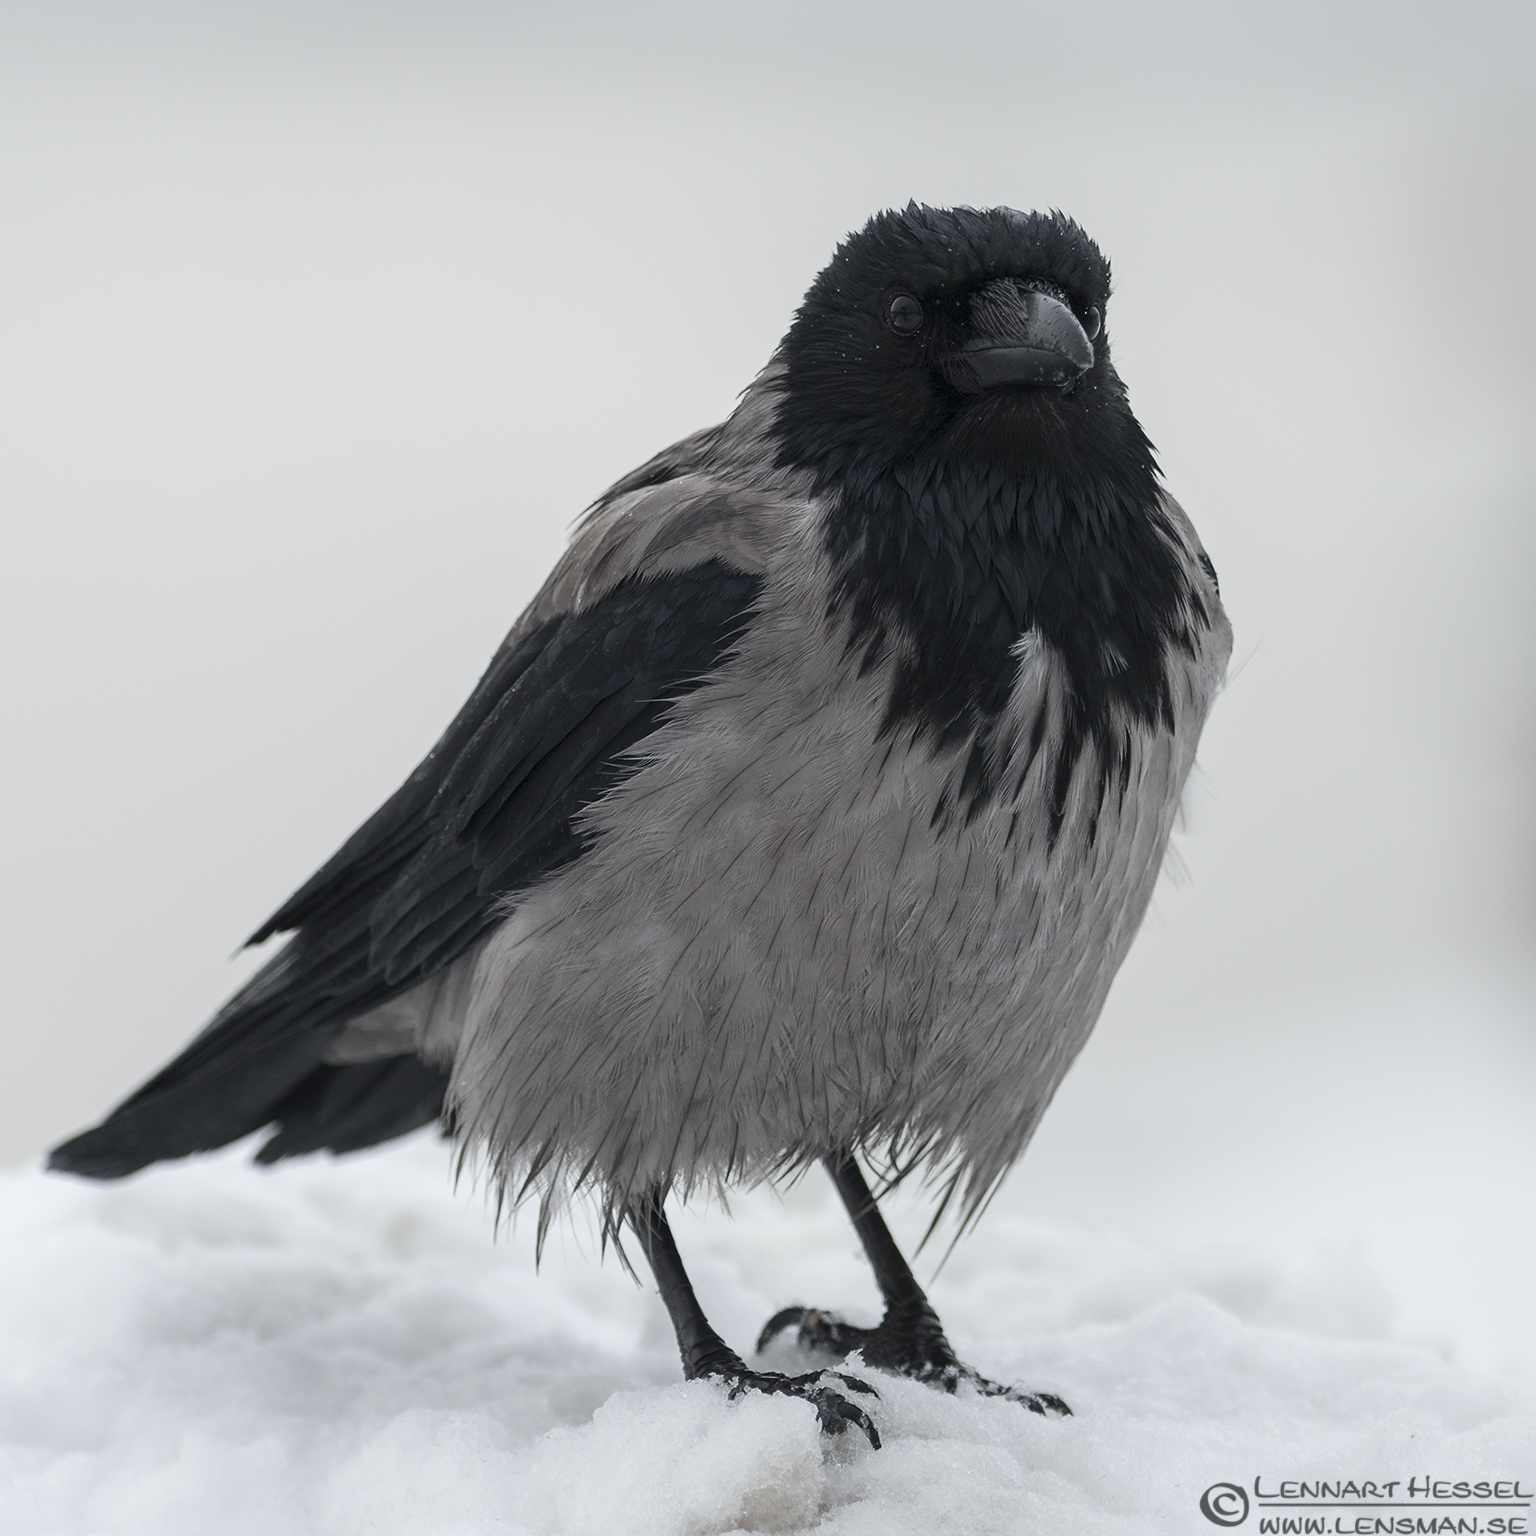 Hooded Crow, winter photo from the Fish Harbor